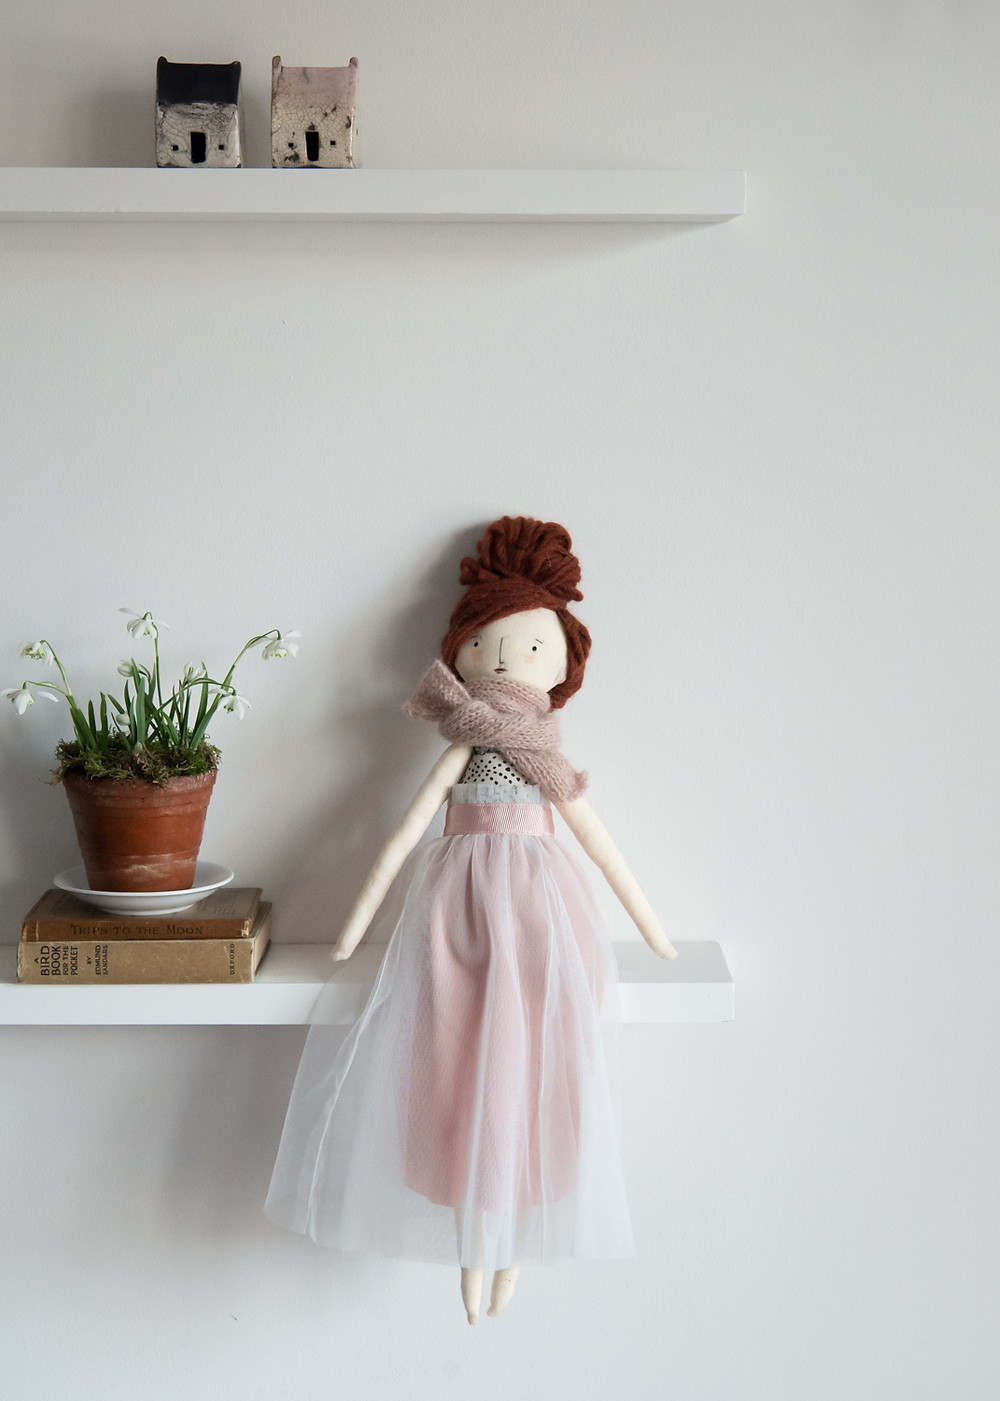 A handmade cloth doll with red wool hair and a tulle skirt sitting on a shelf